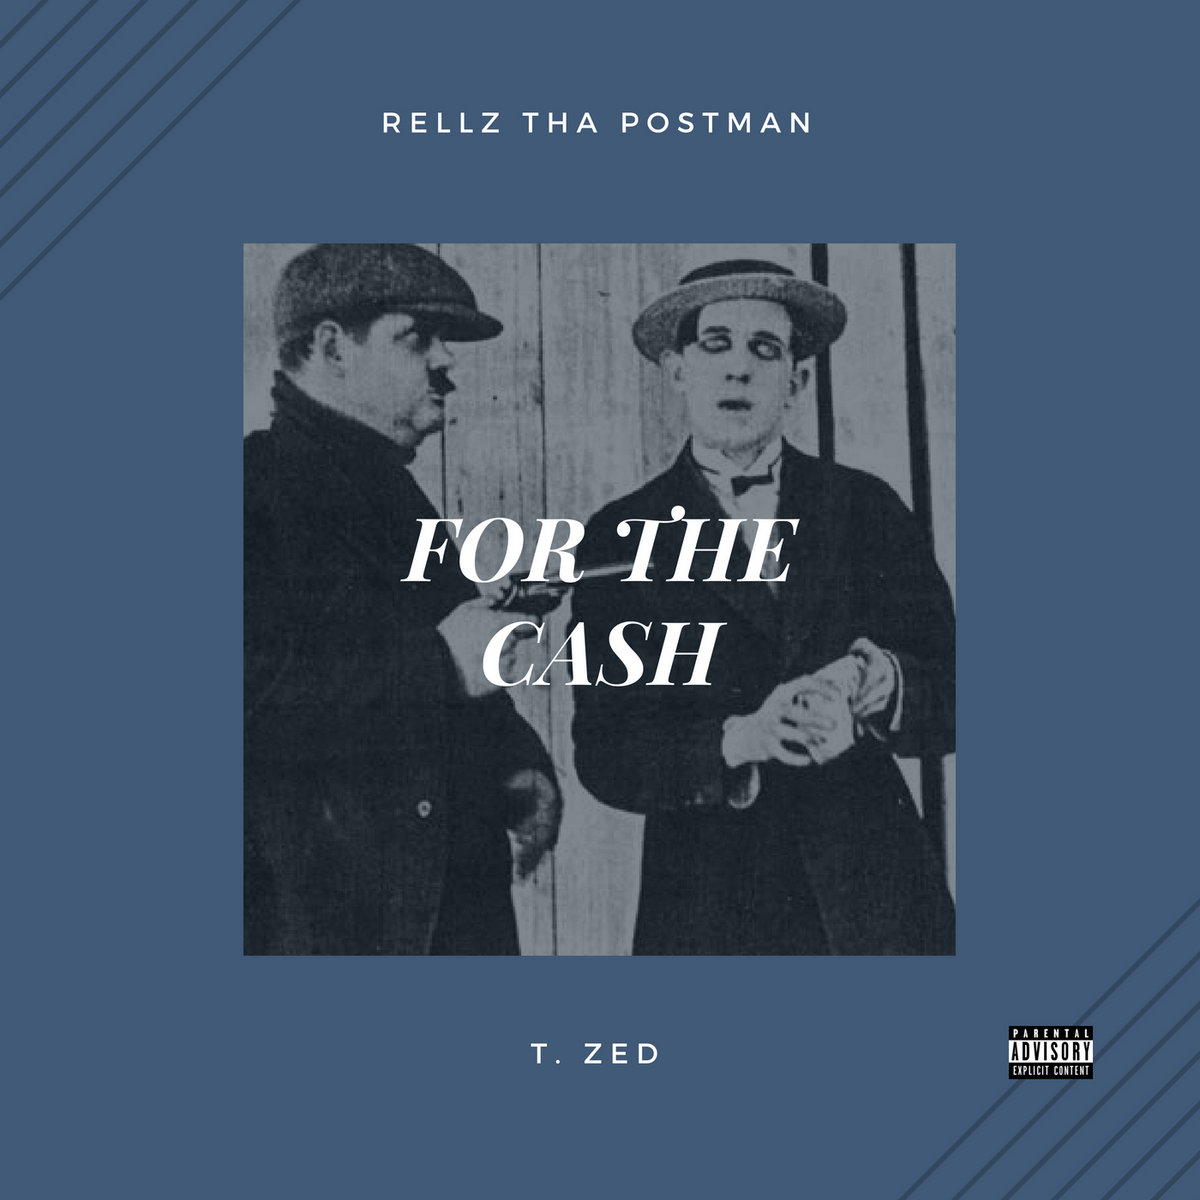 For the Cash ft T. Zed by Rellz Tha Postman ft T. Zed